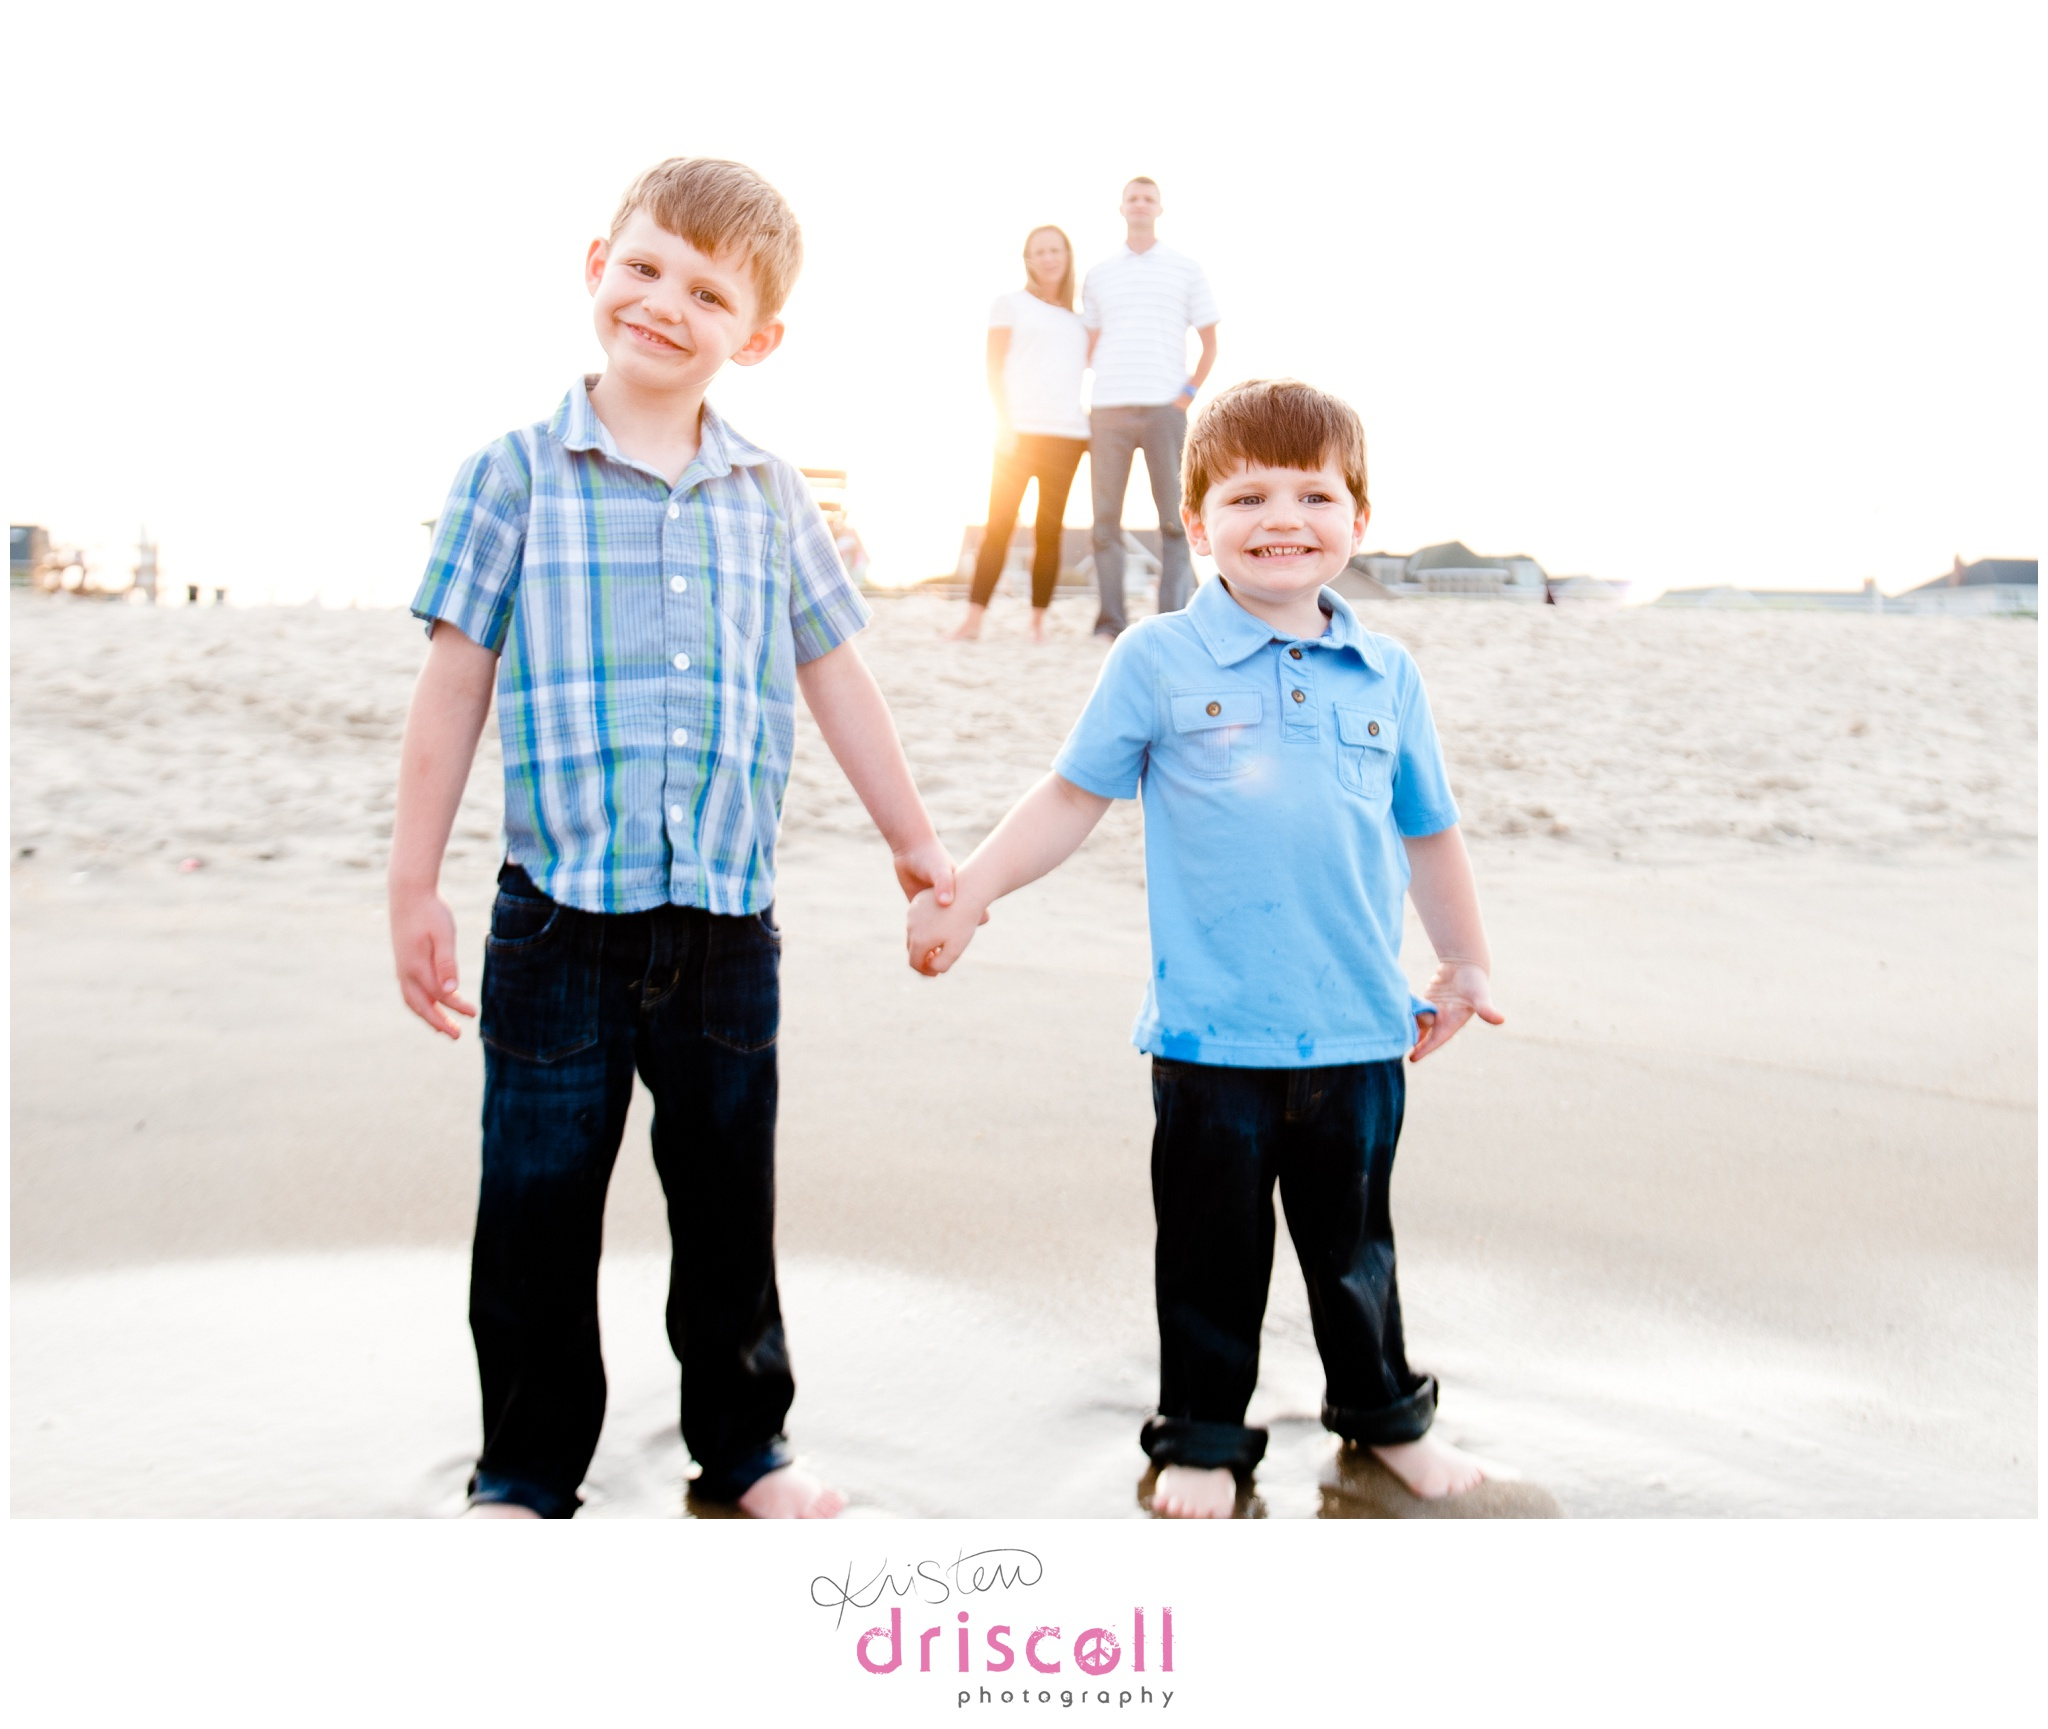 spring lake nj family photographers kristen driscoll photography